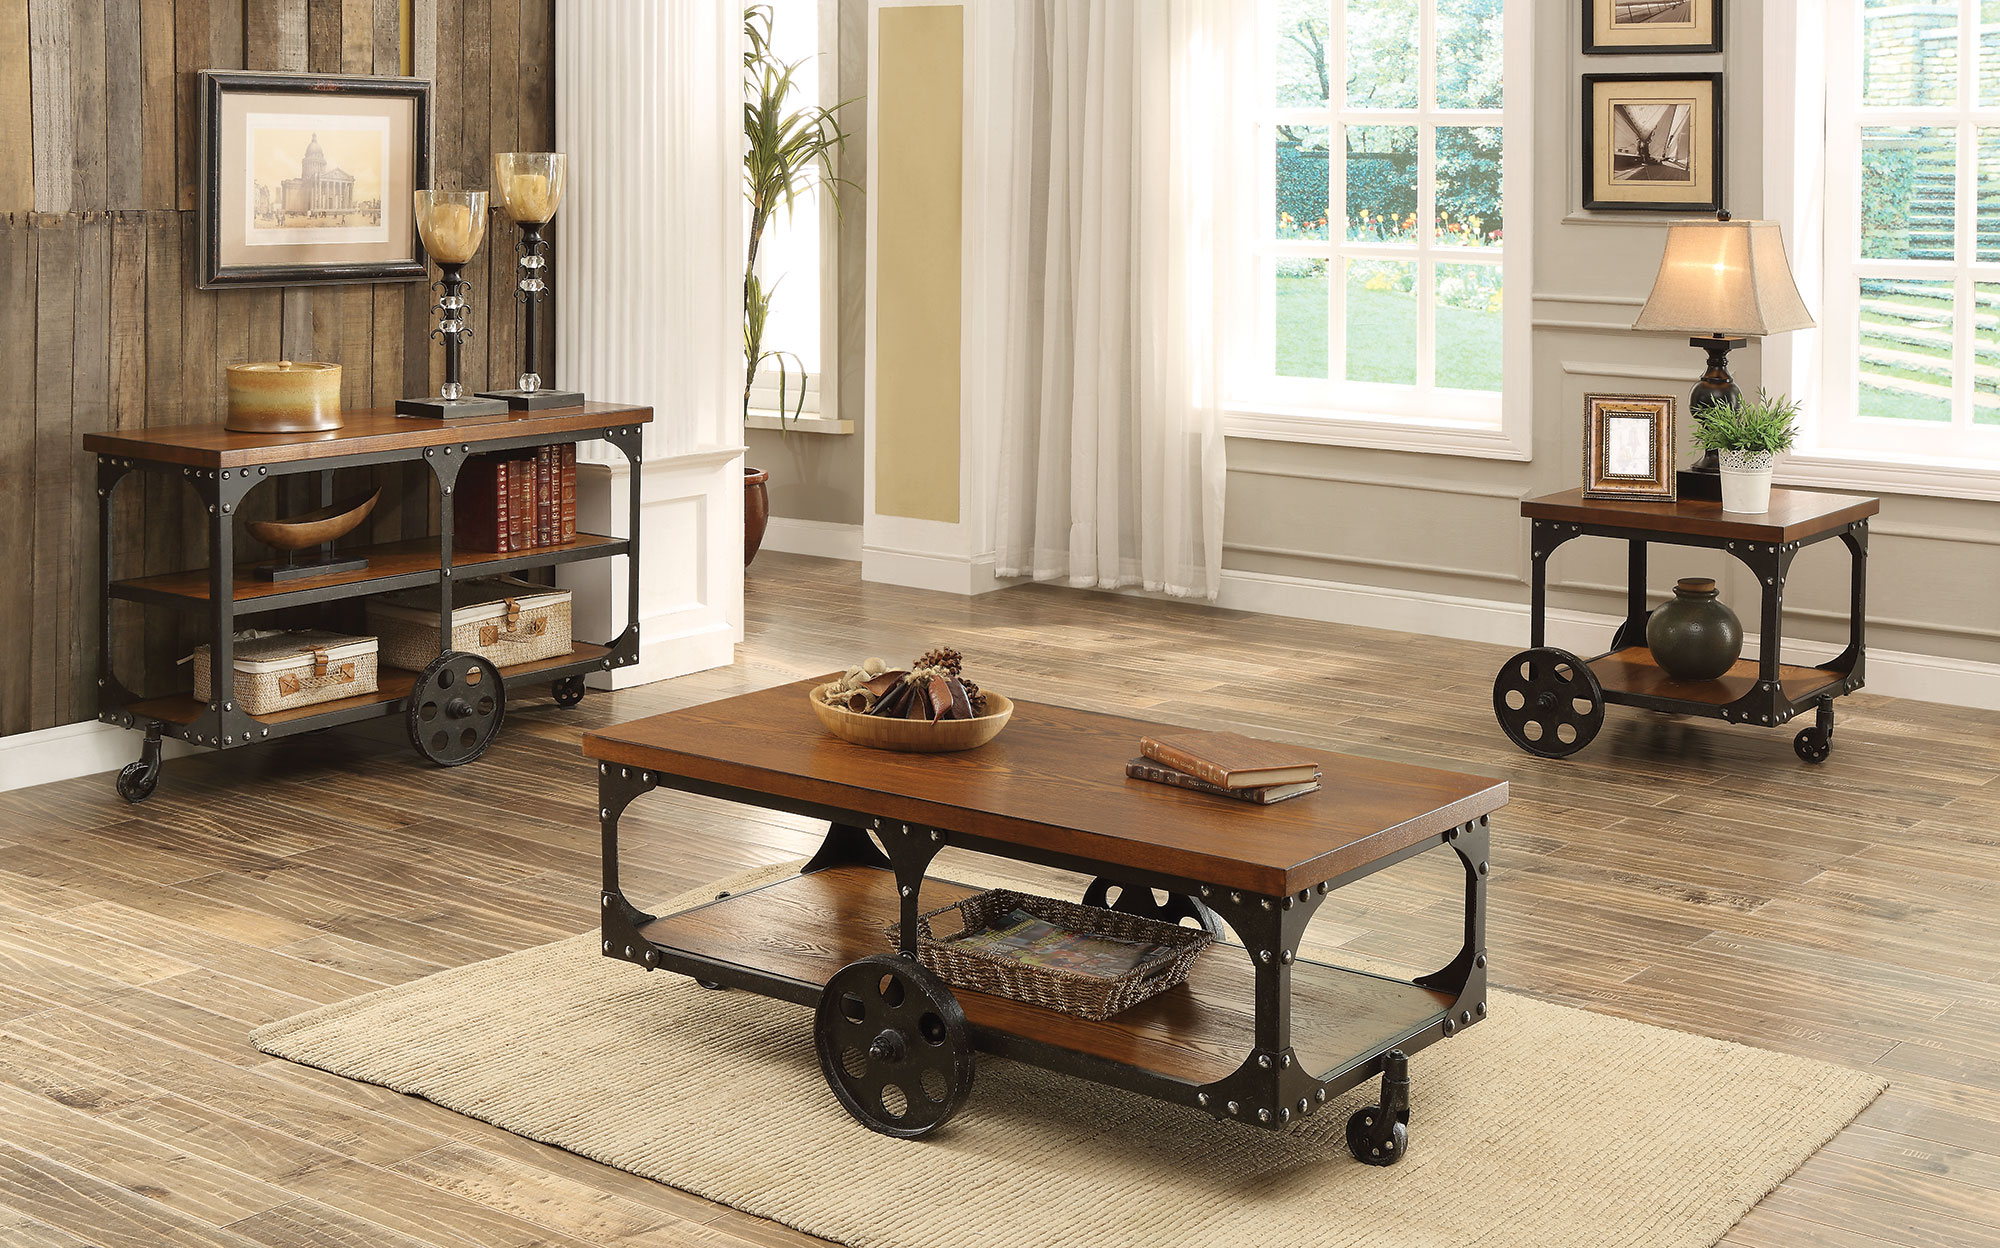 huck rustic country style coffee table collection